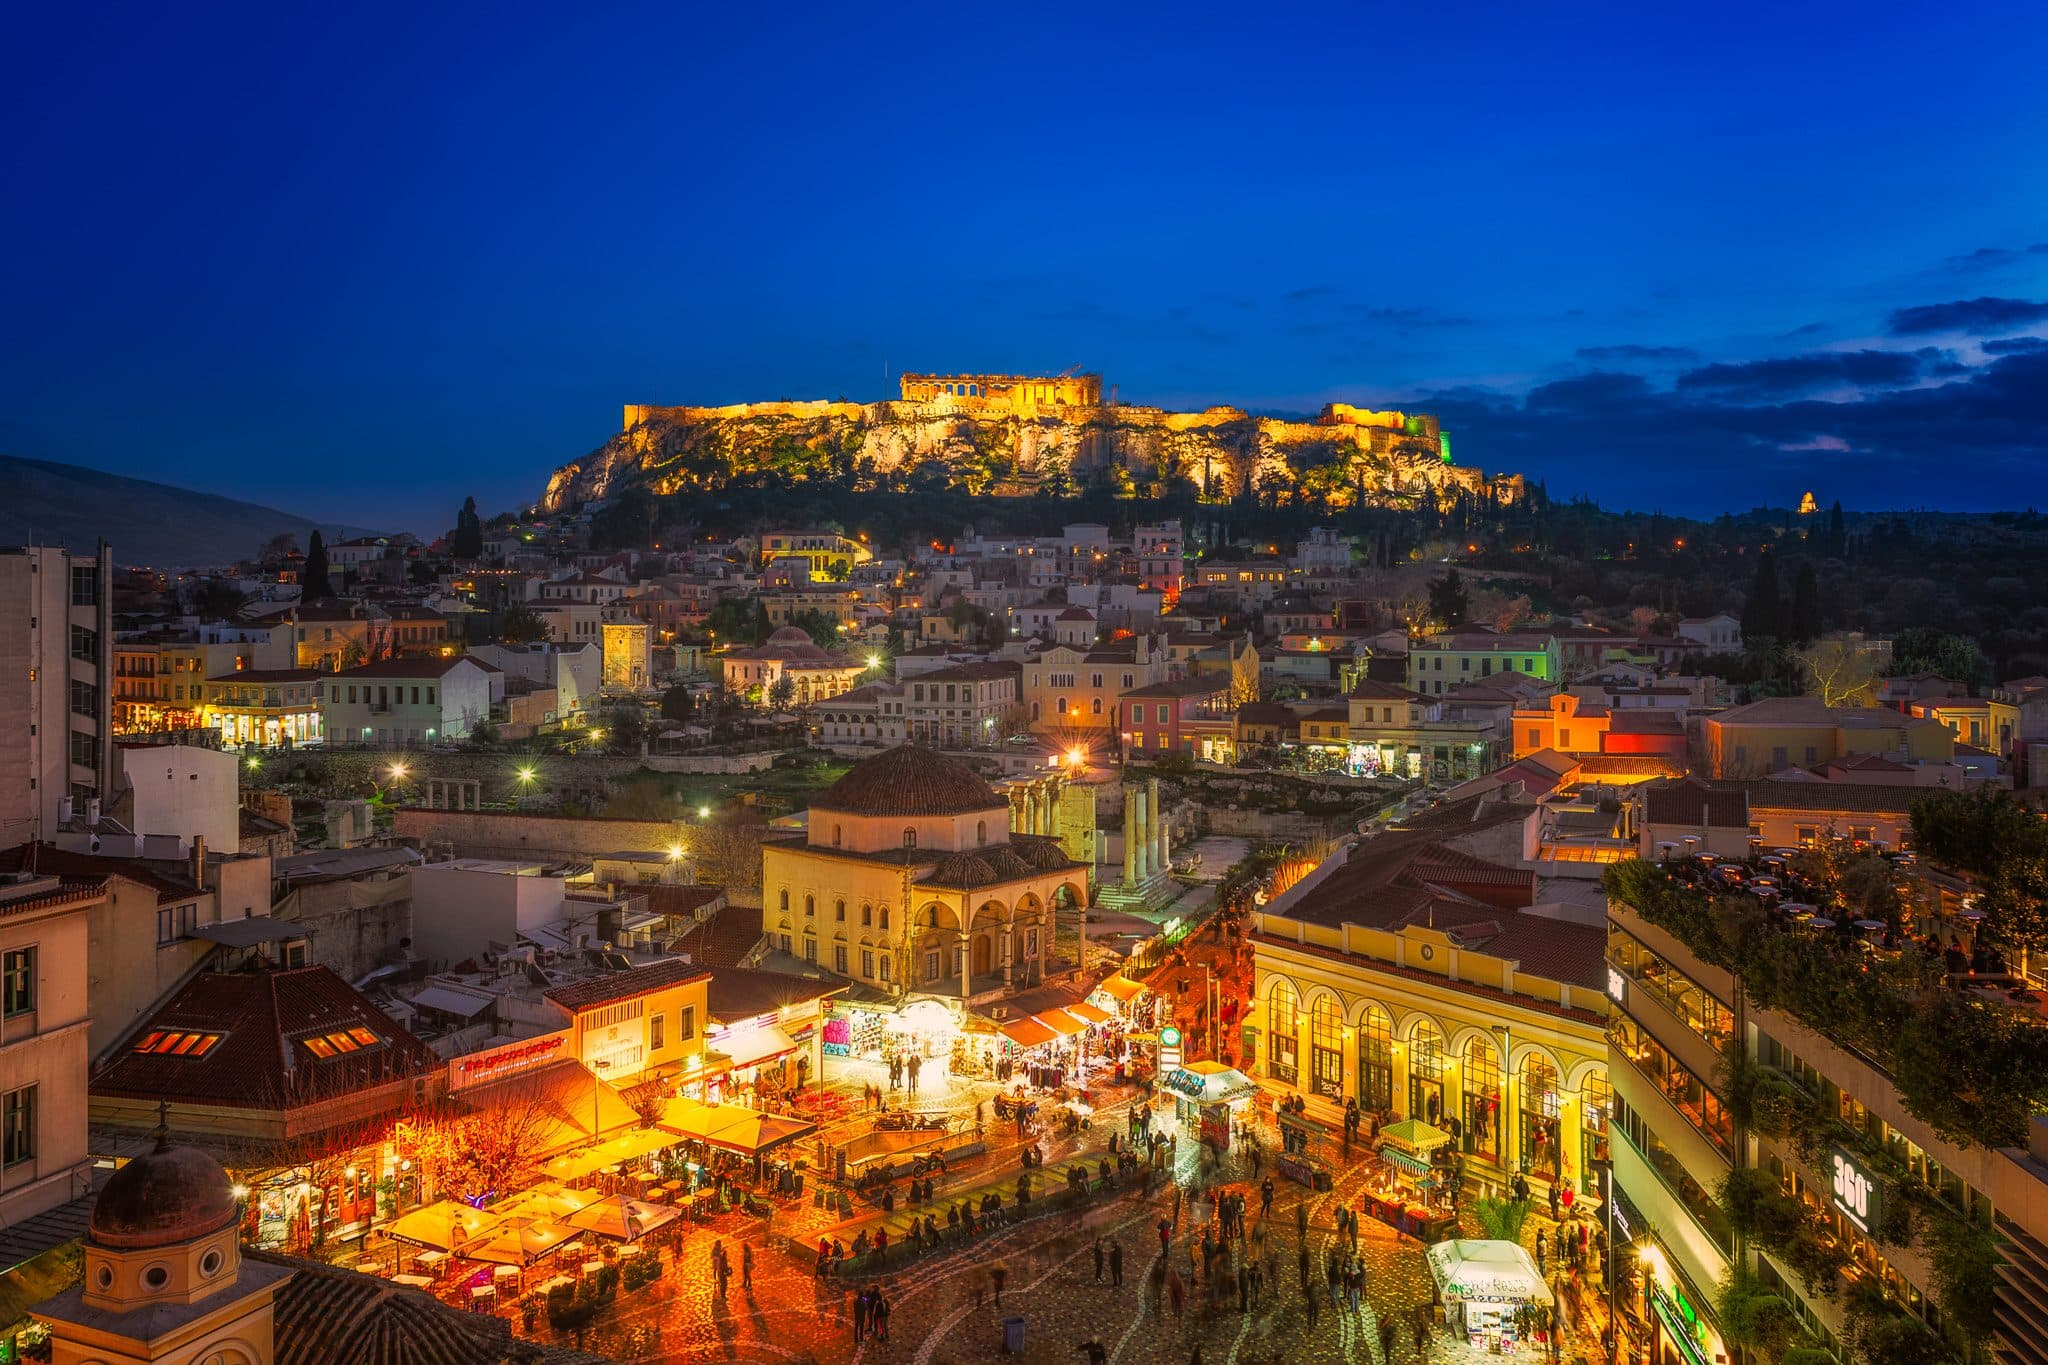 A beautiful photo that shows the vivid Monastiraki Square in Athens at night.